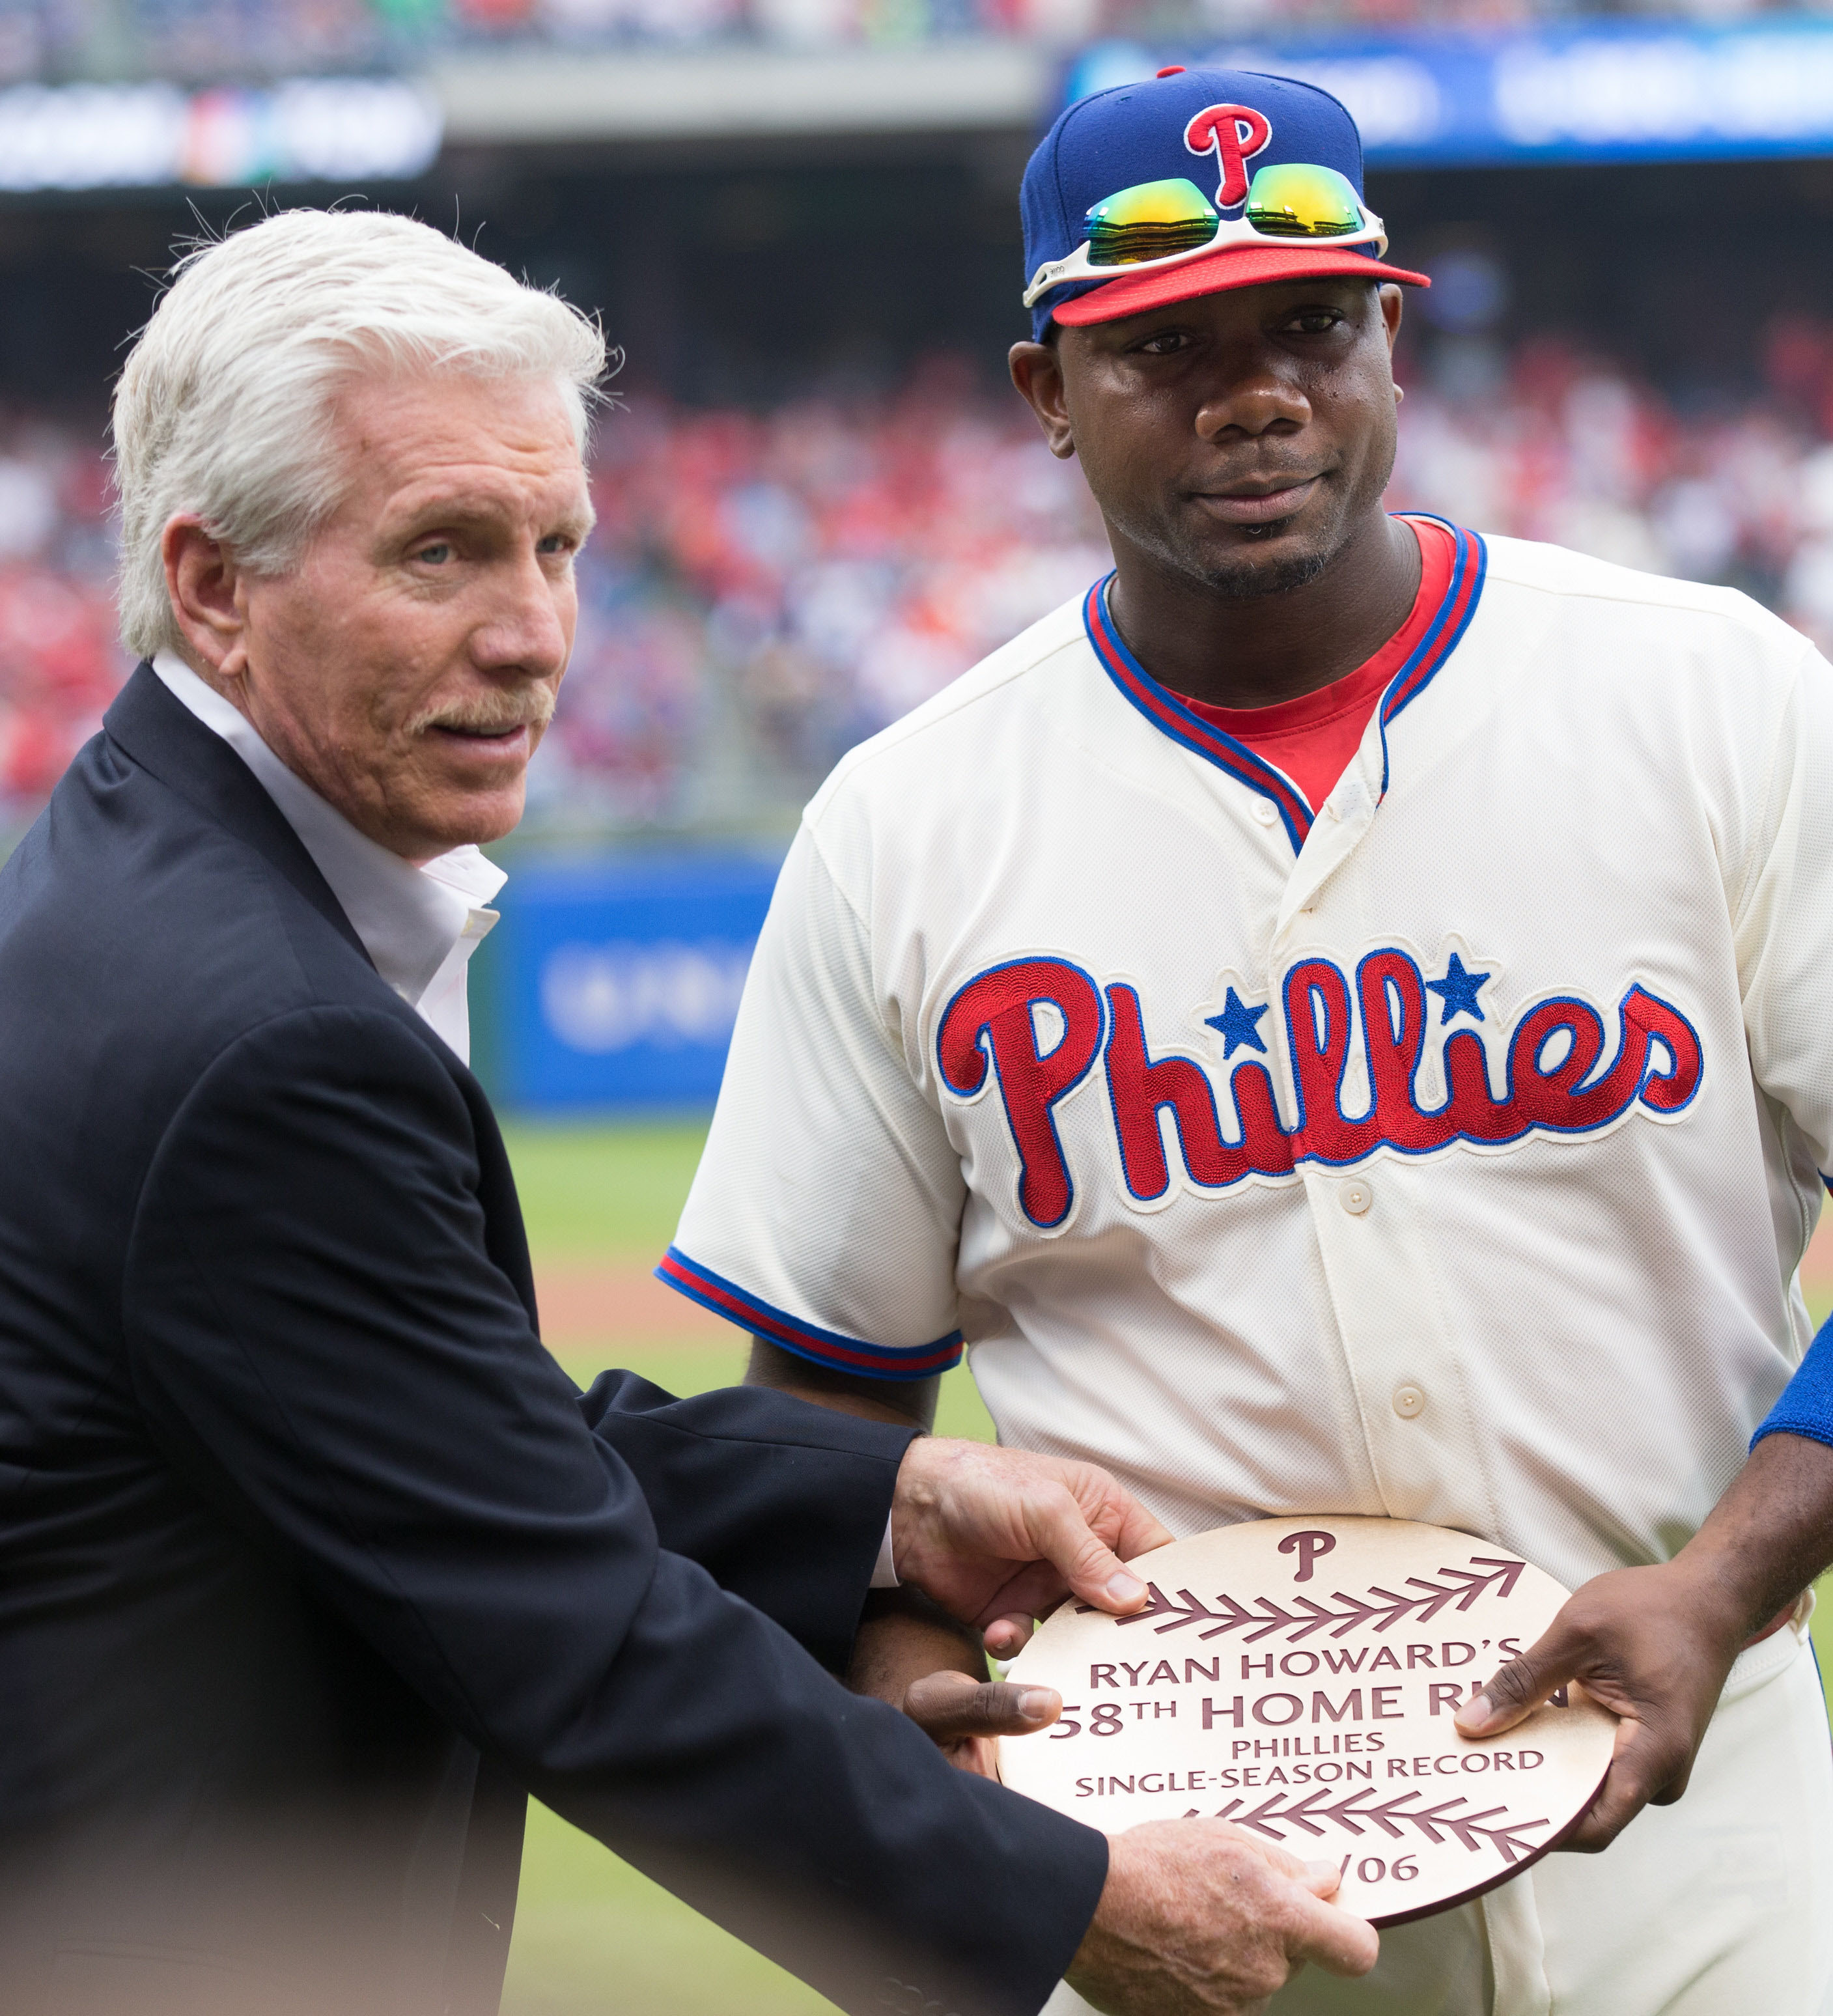 Braves release former MVP Ryan Howard from minor league deal